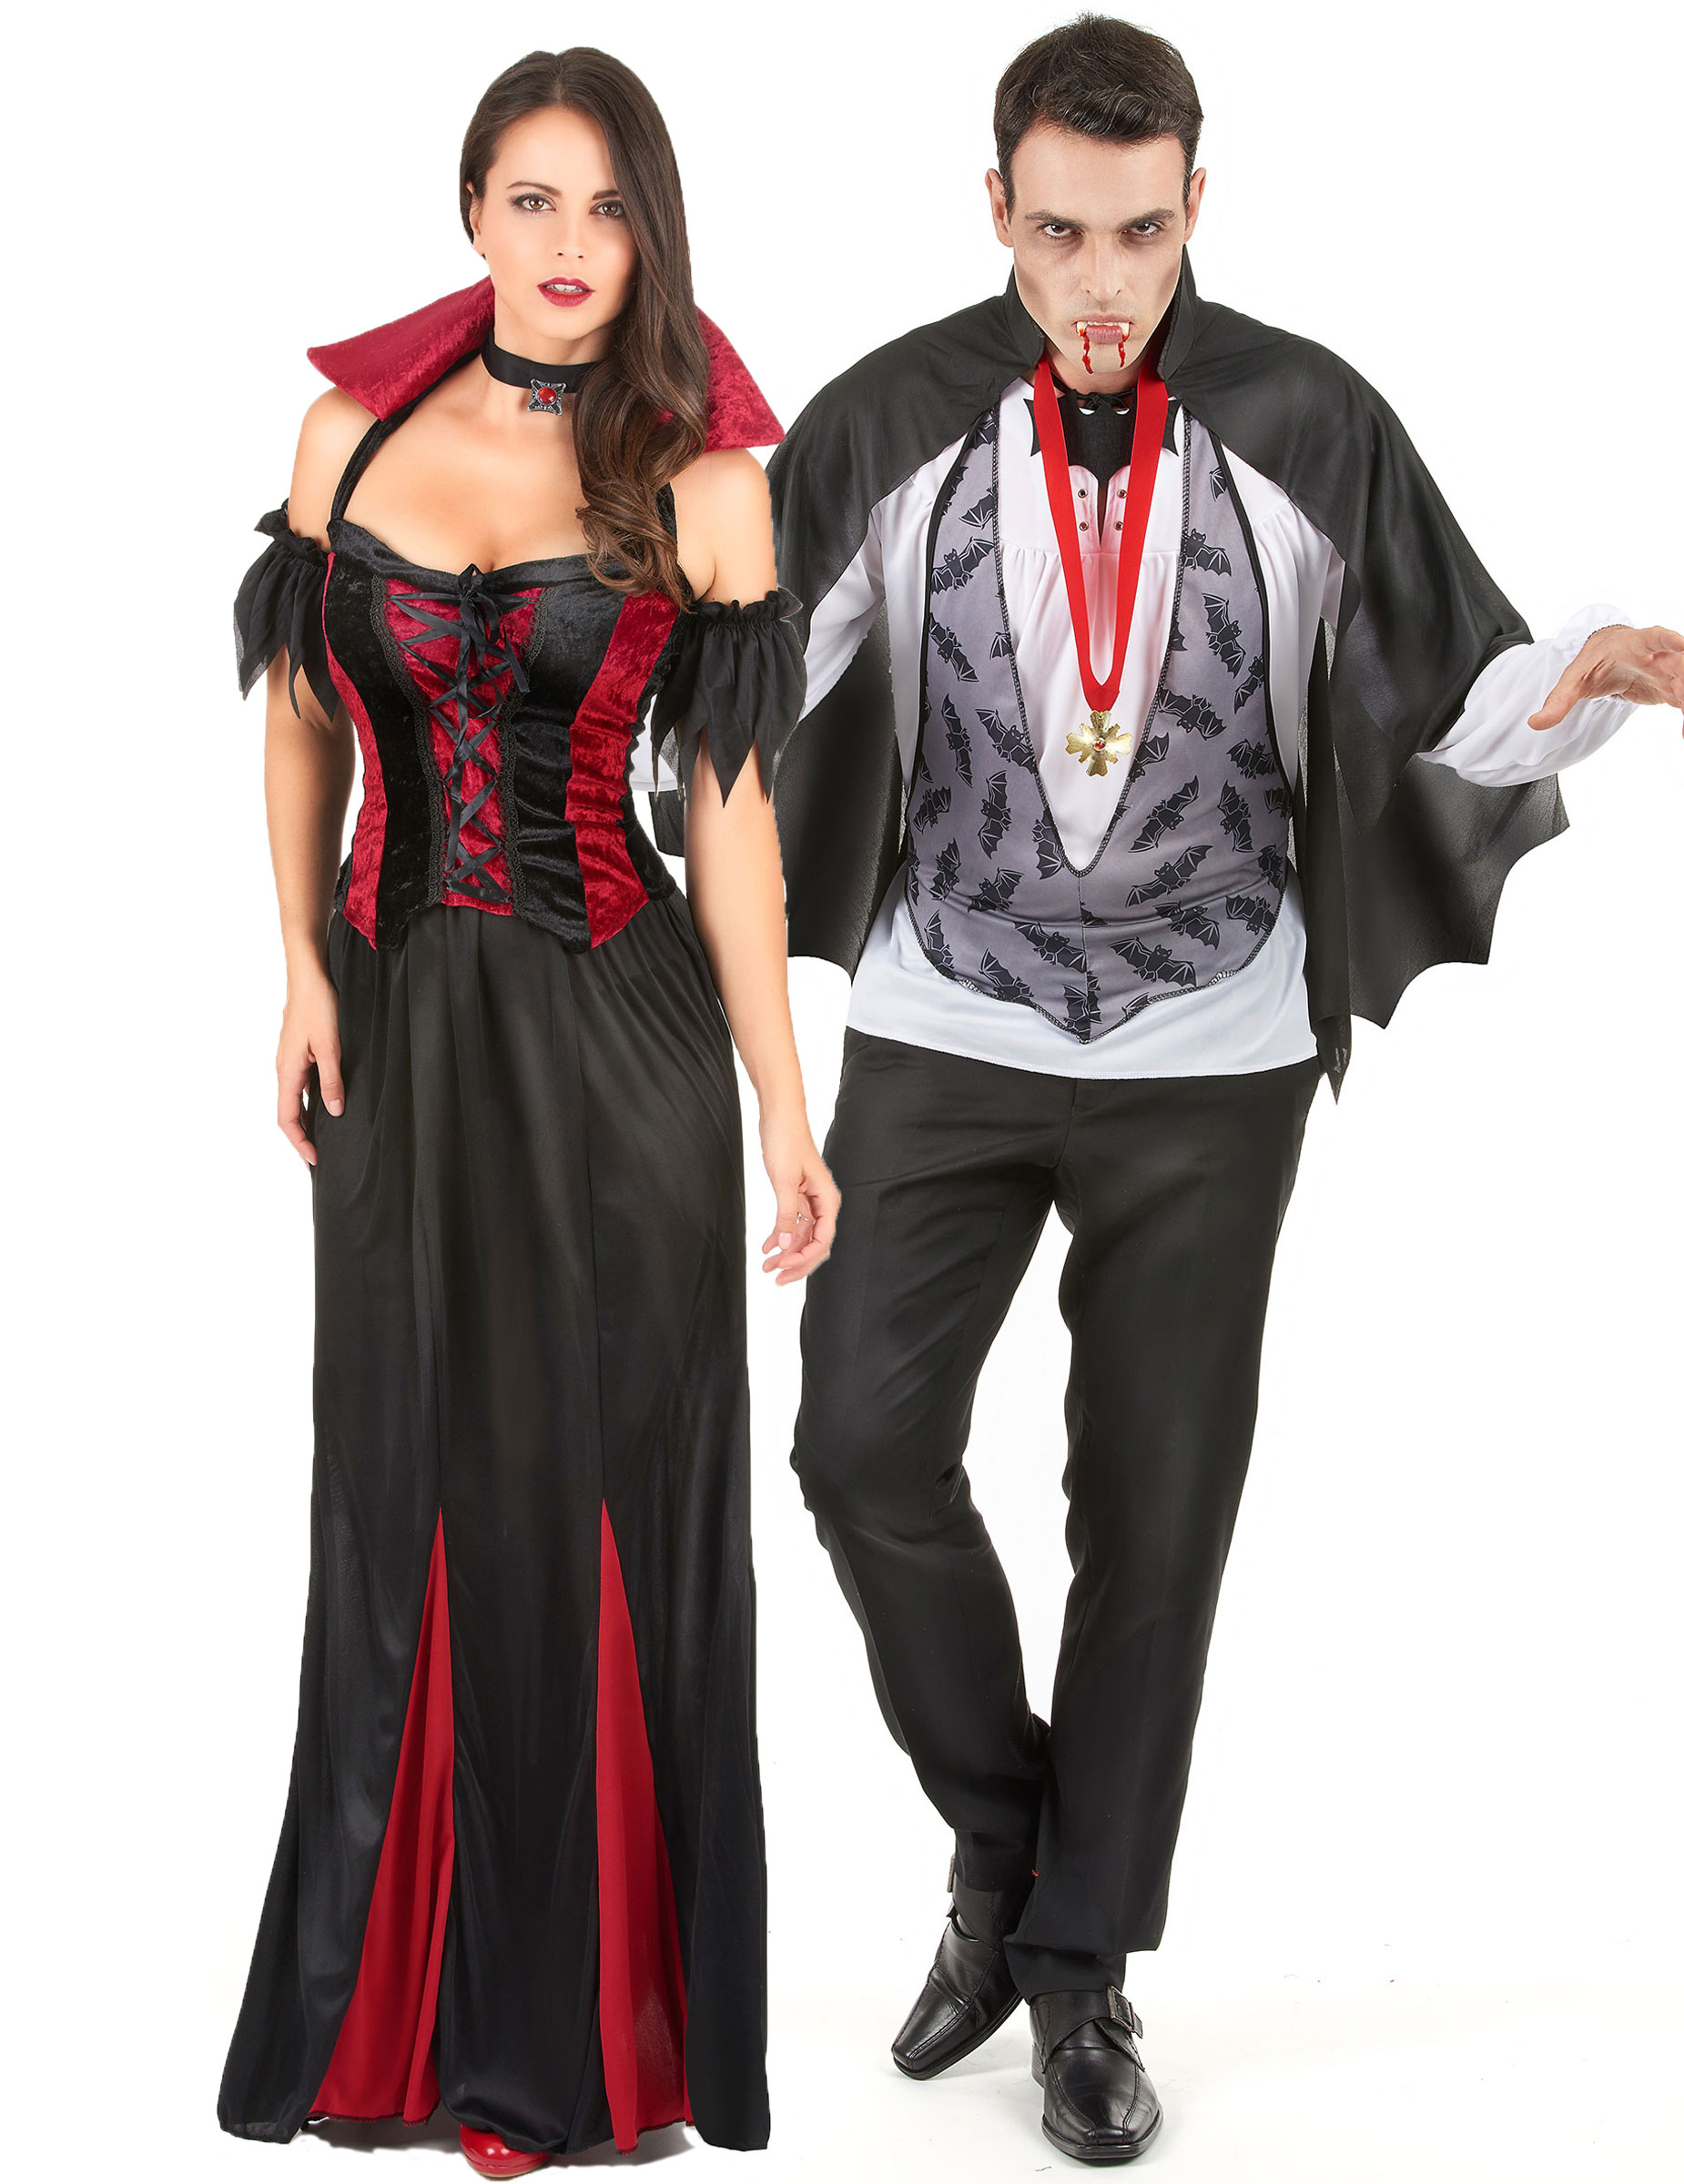 D guisement couple de vampire halloween deguise toi achat de d guisements couples - Deguisement halloween couple ...